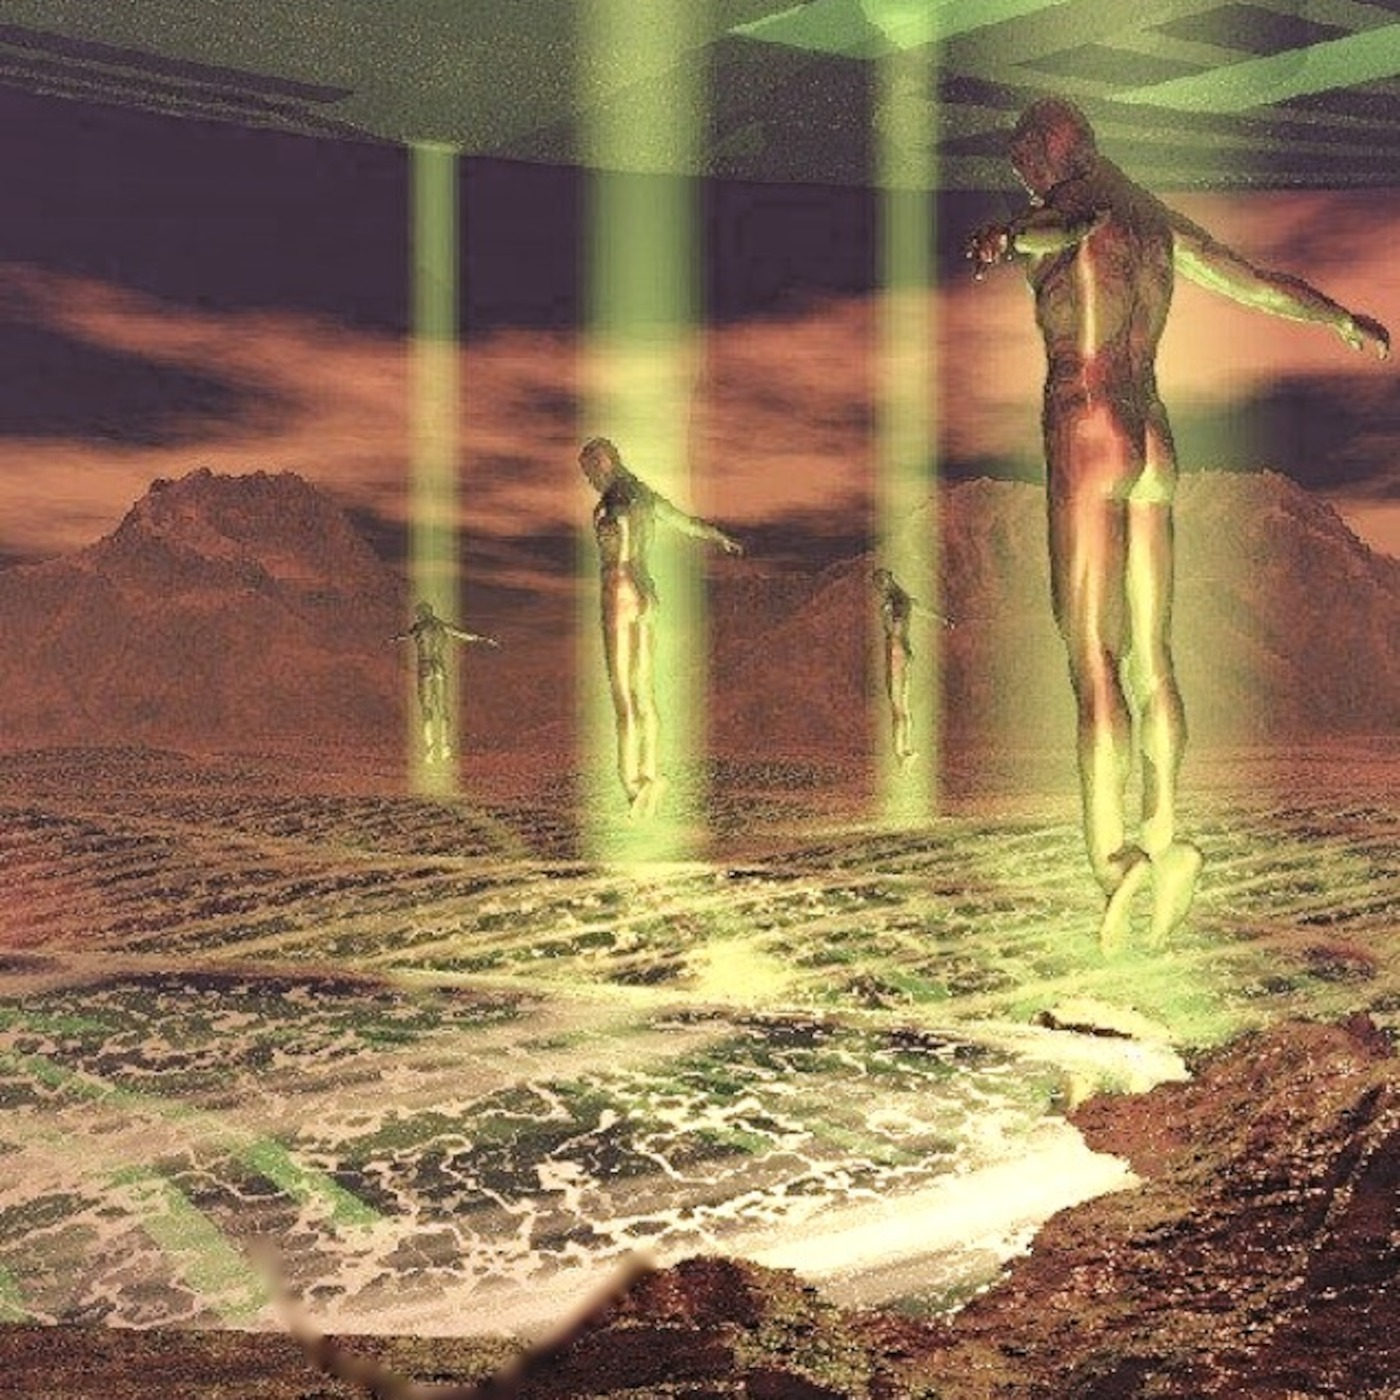 astral projection and its influence on life quality on earth Astral projection was introduced in the 20th century and has started to spread its roots far and wide people have numerous doubts and questions about astral projection.